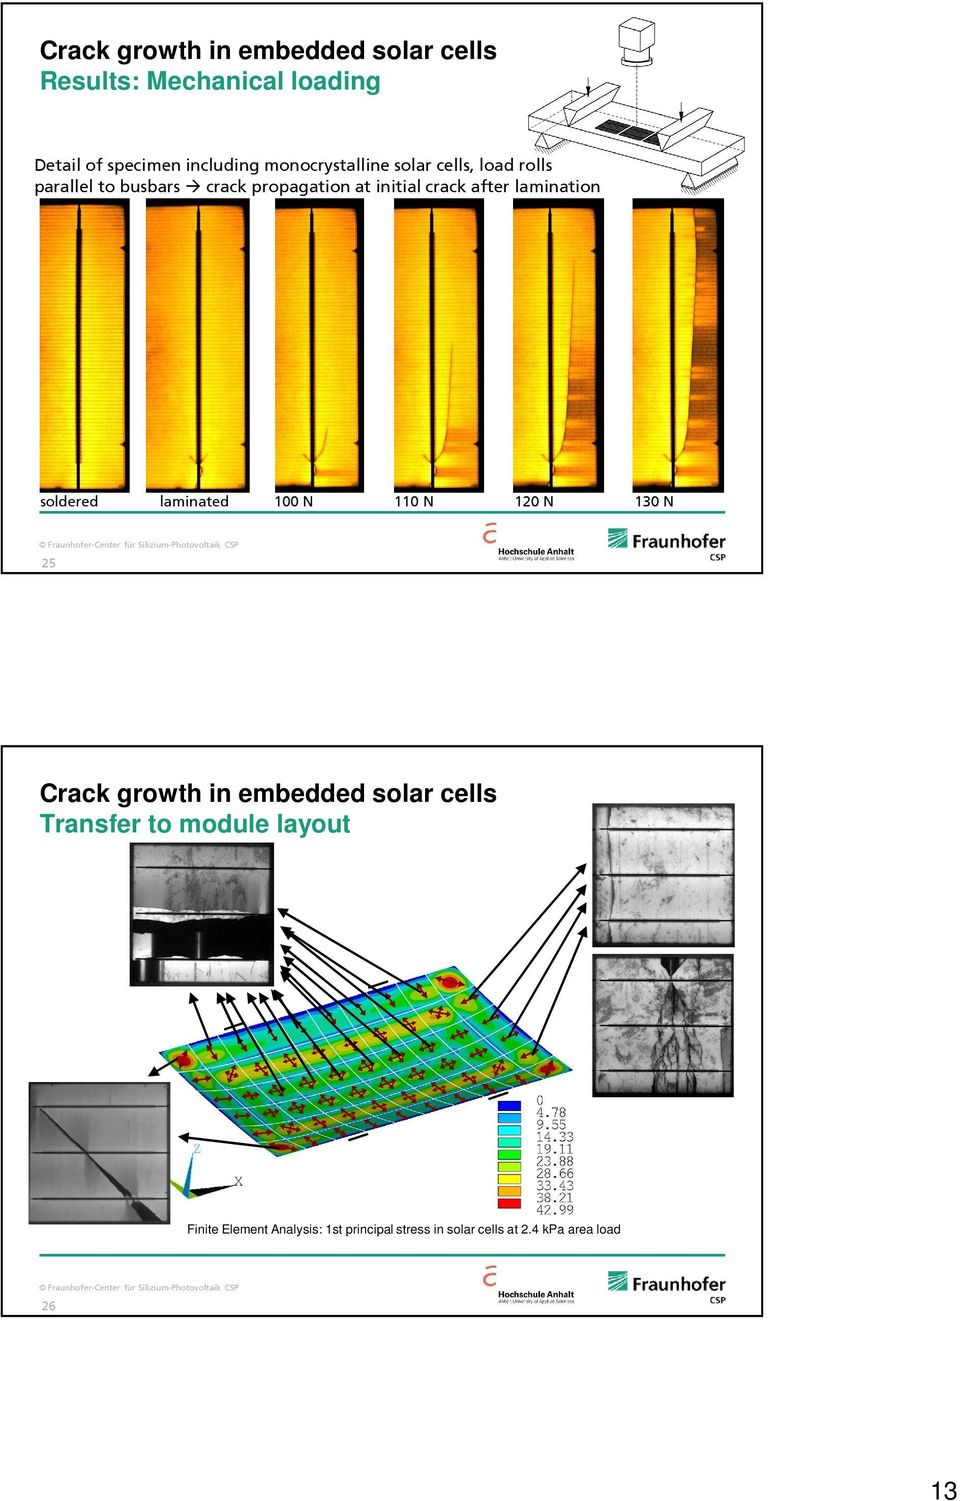 lamination soldered laminated 100 N 110 N 120 N 130 N 25 Crack growth in embedded solar cells